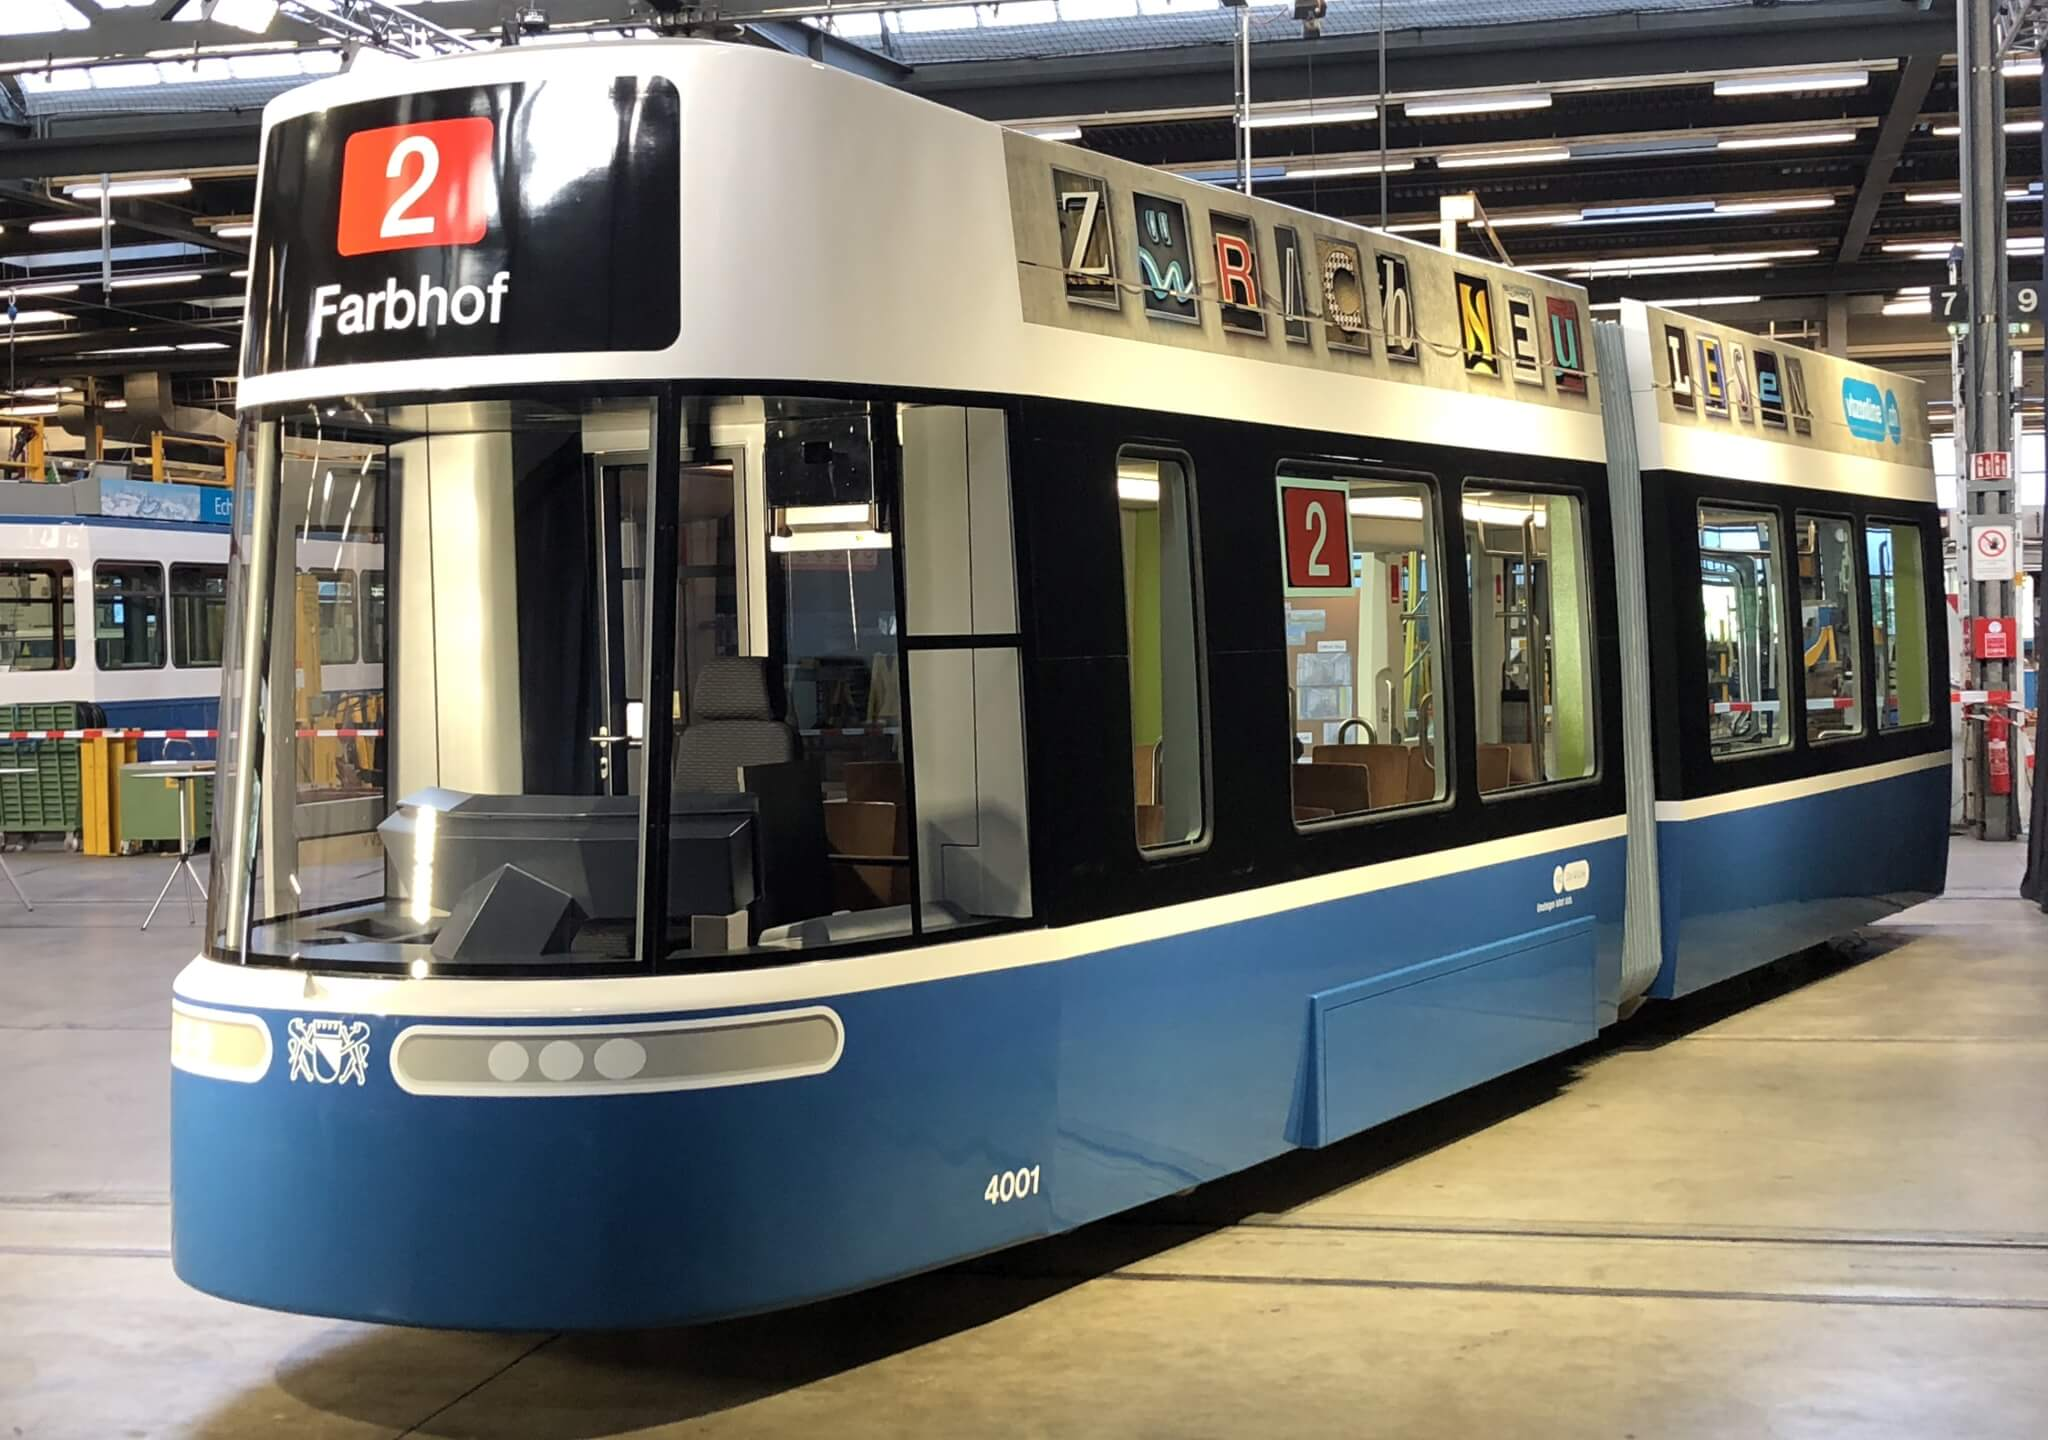 Bombardier FLEXITY tram introduced in Zurich